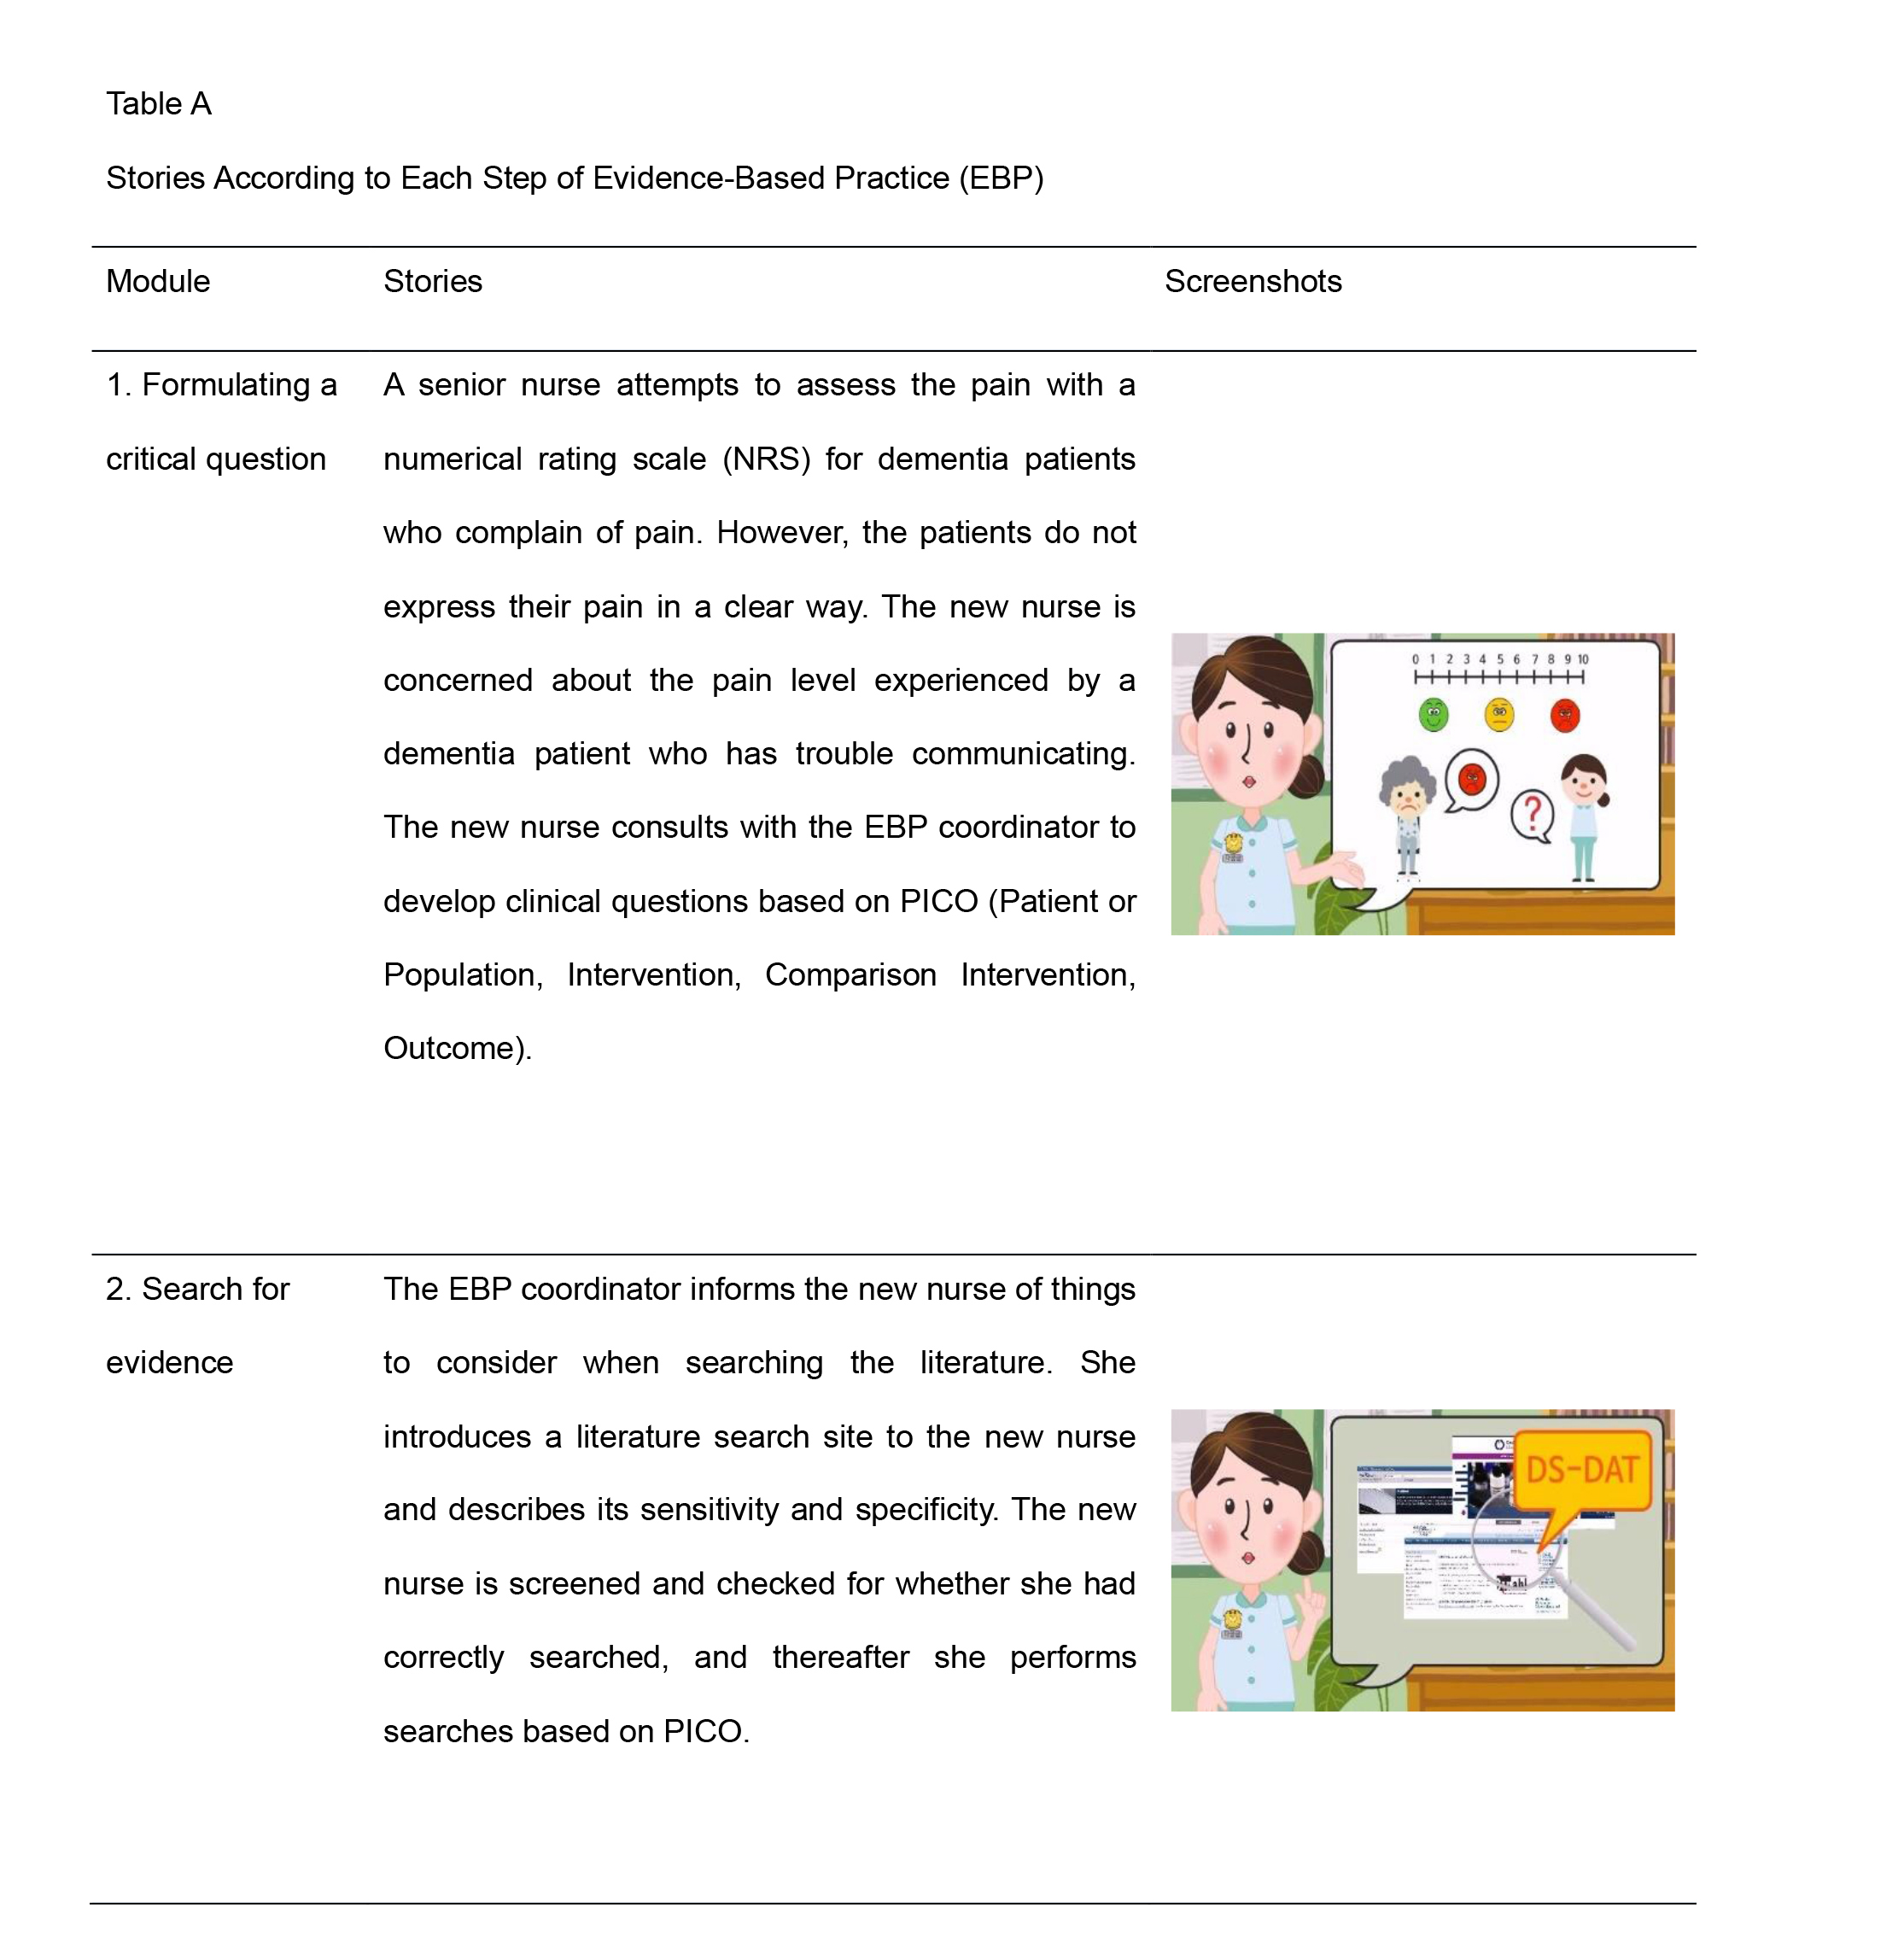 Stories According to Each Step of Evidence-Based Practice (EBP)